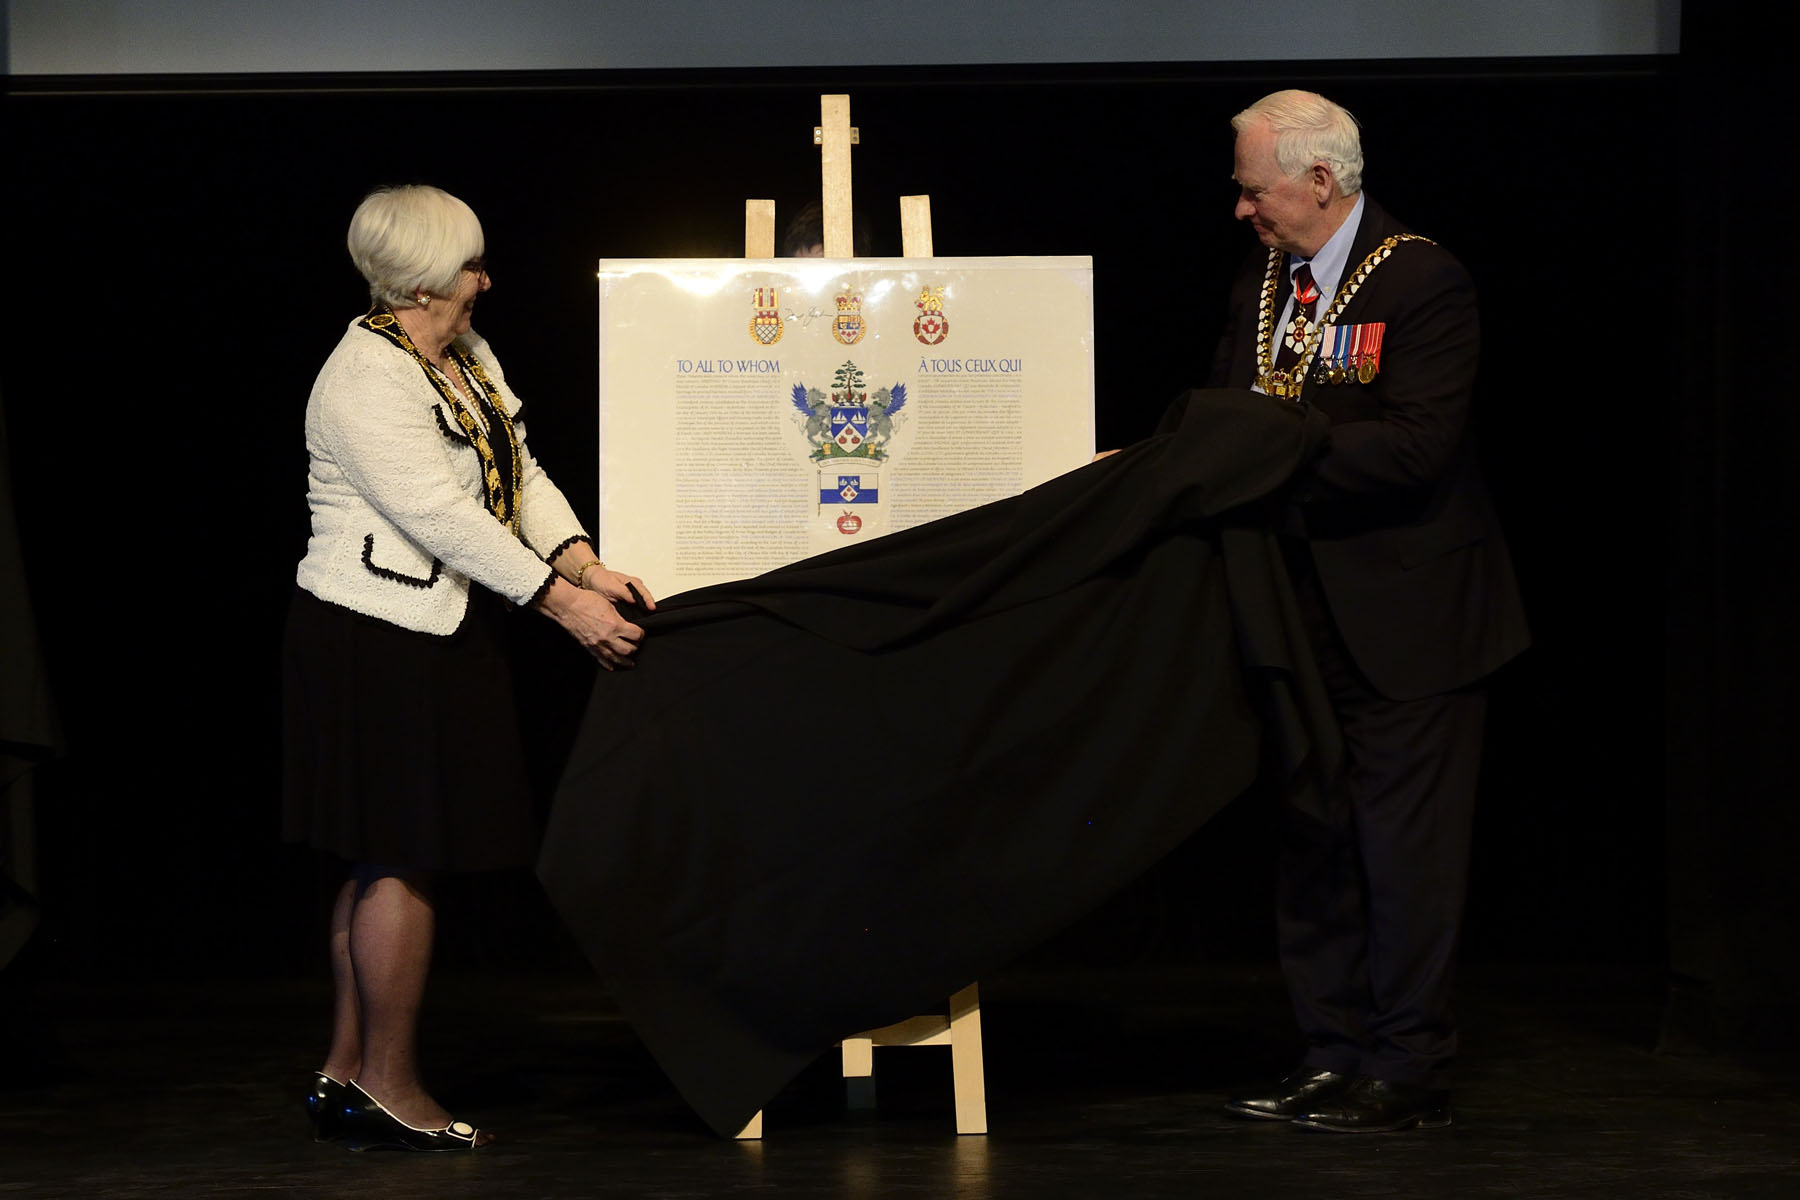 In Meaford, His Excellency participated in the unveiling ceremony of the municipality's new coat of arms and insignia.